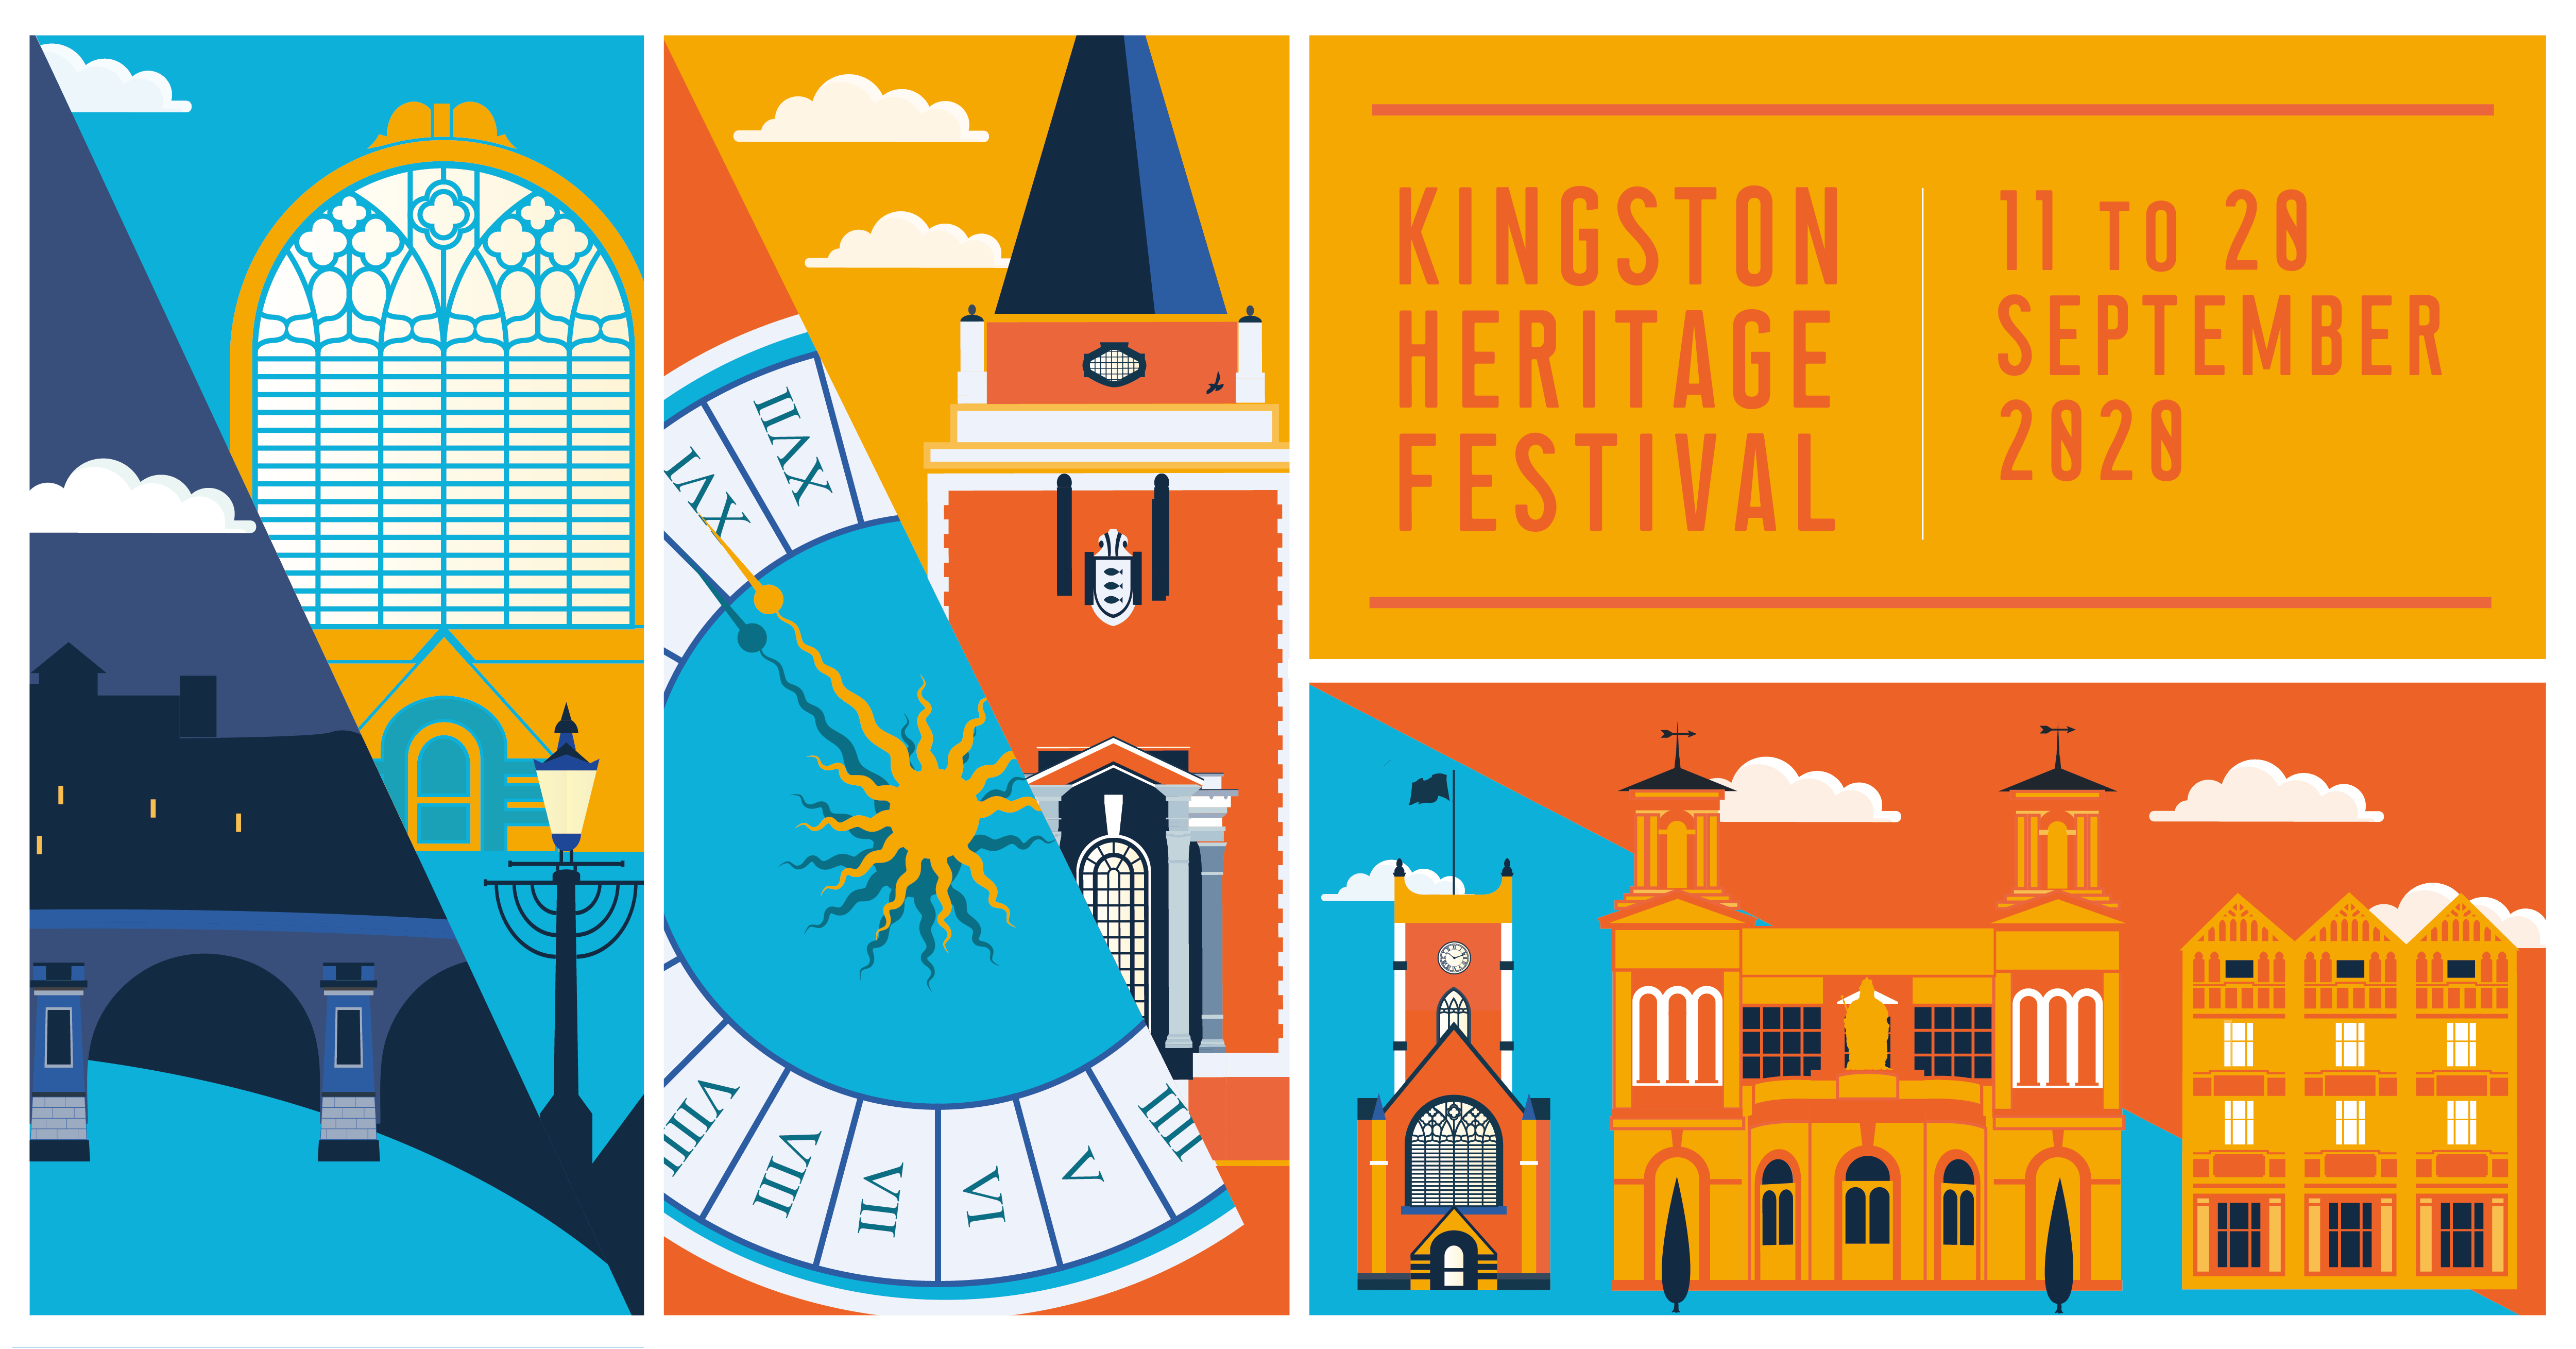 Simplistic drawings in bright colours of famous buildings from the borough including the guildhall, Kingston bridge and market place